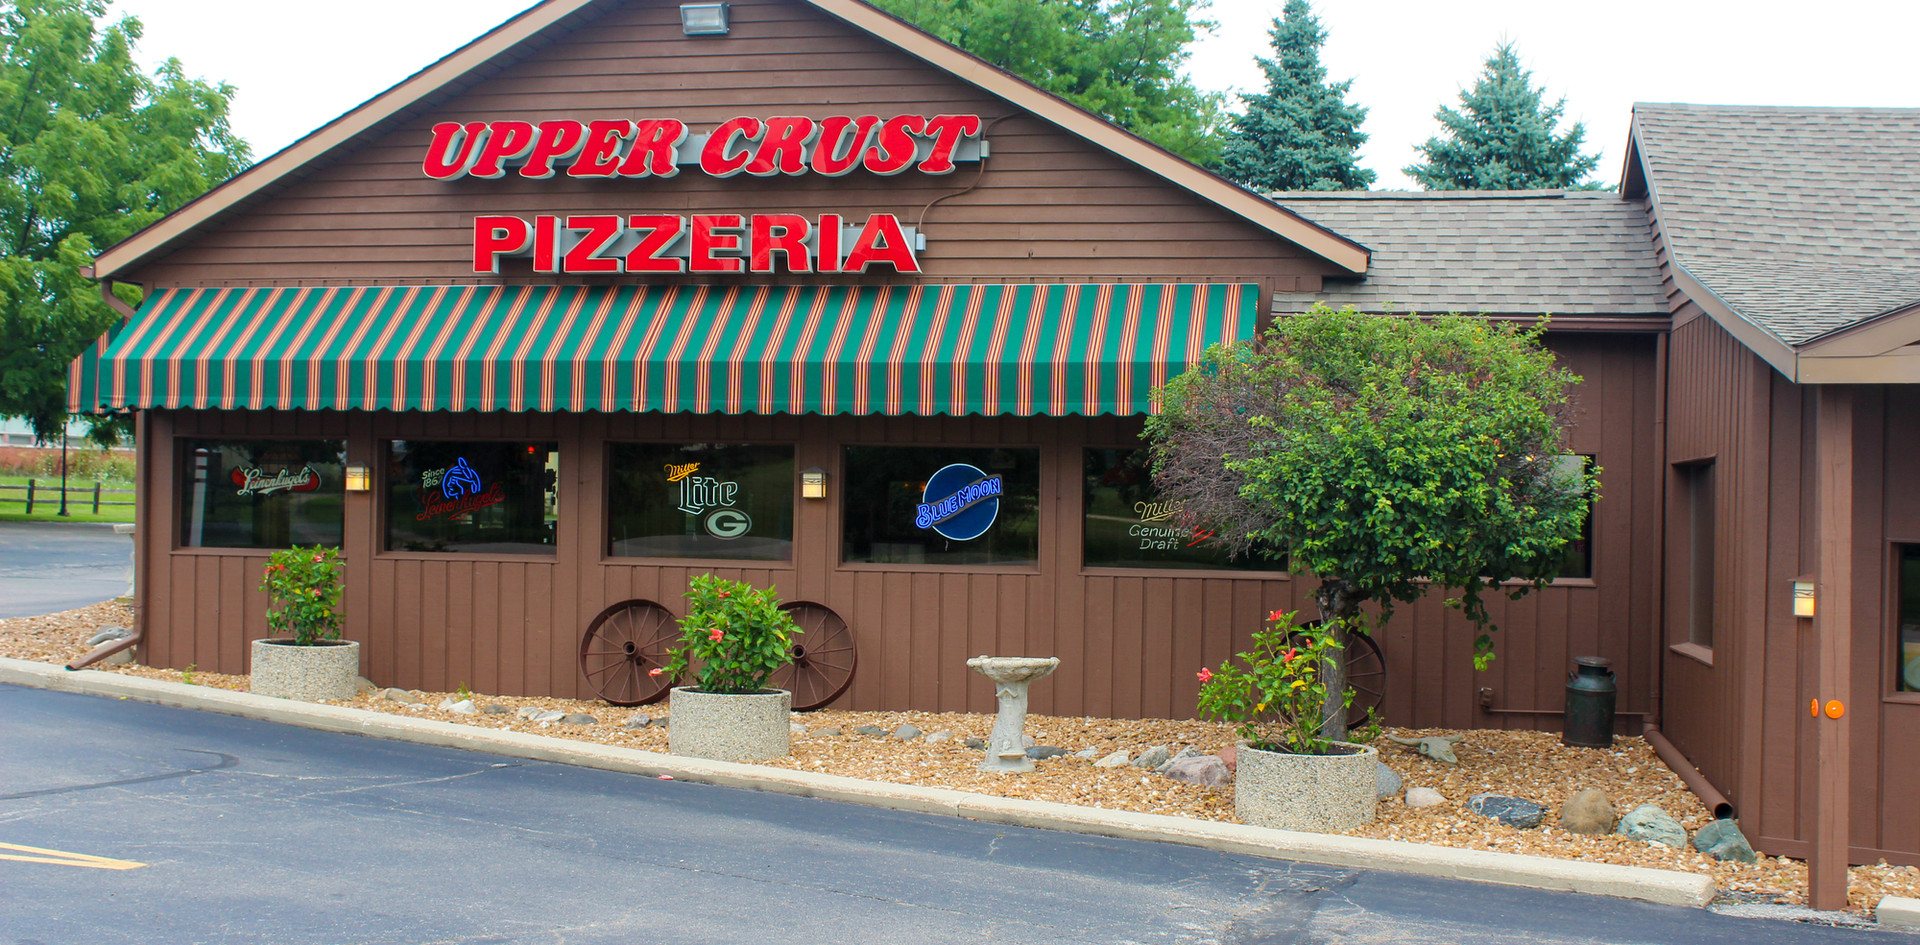 Upper Crust Pizzeria Pell Lake, WI